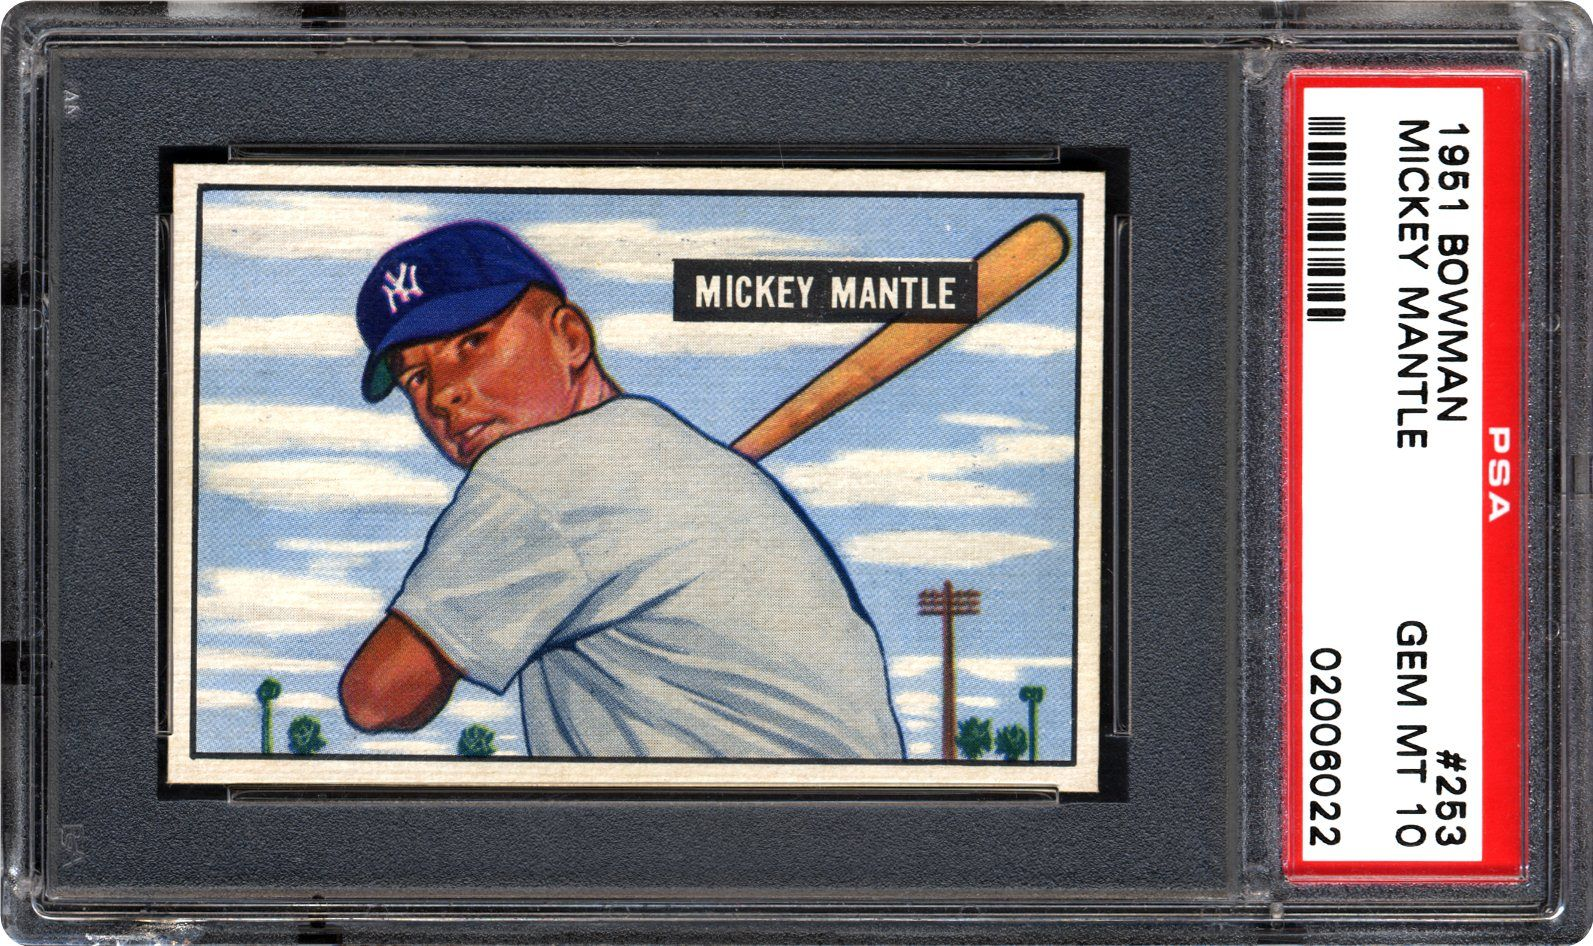 1951 Bowman Mickey Mantle Psa Cardfacts